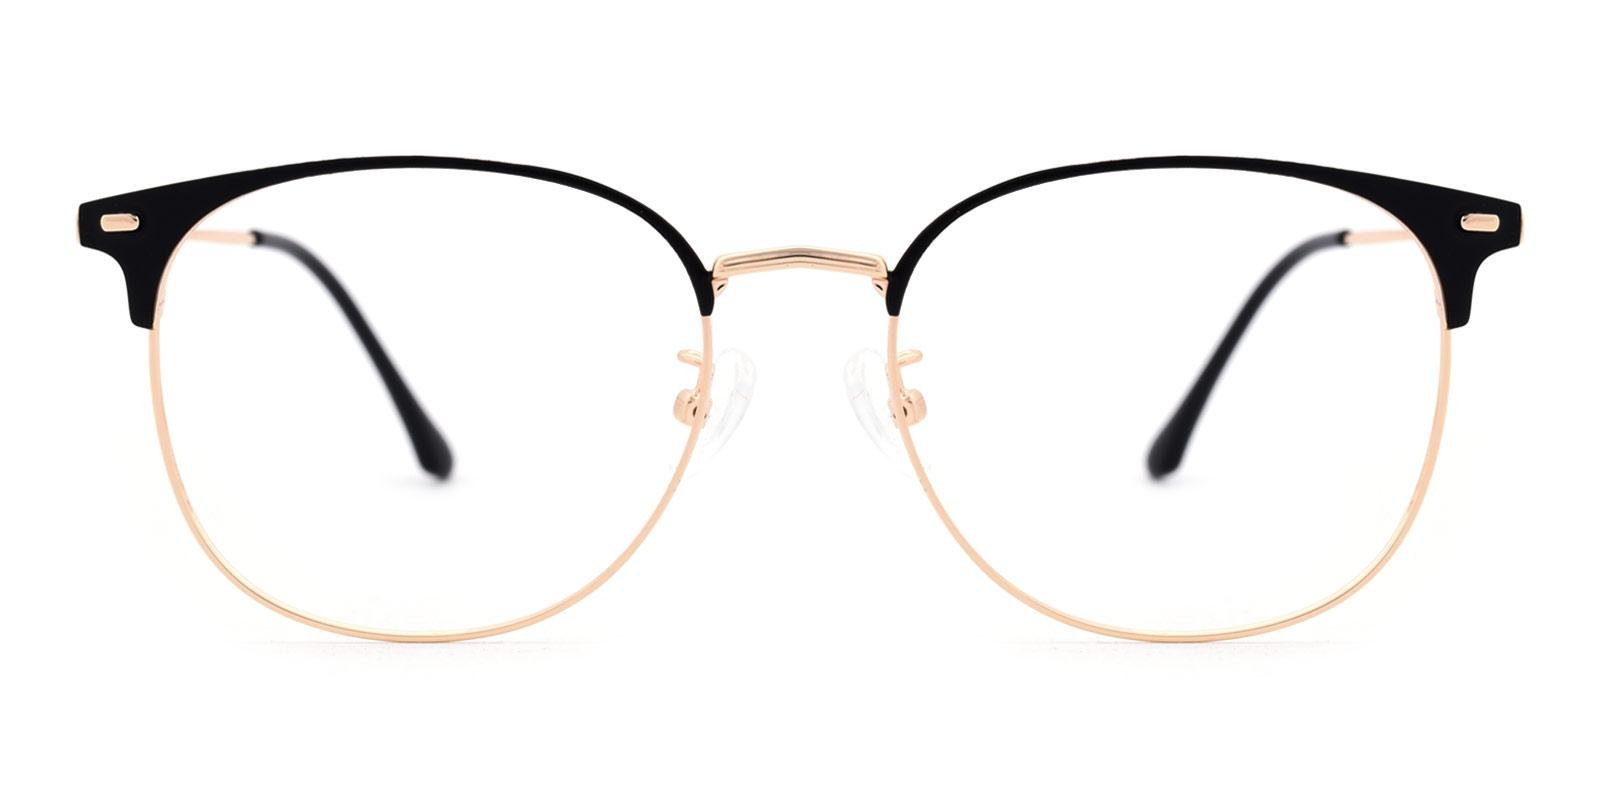 Luther-Black-Browline / Rectangle / Round-Metal-Eyeglasses-detail